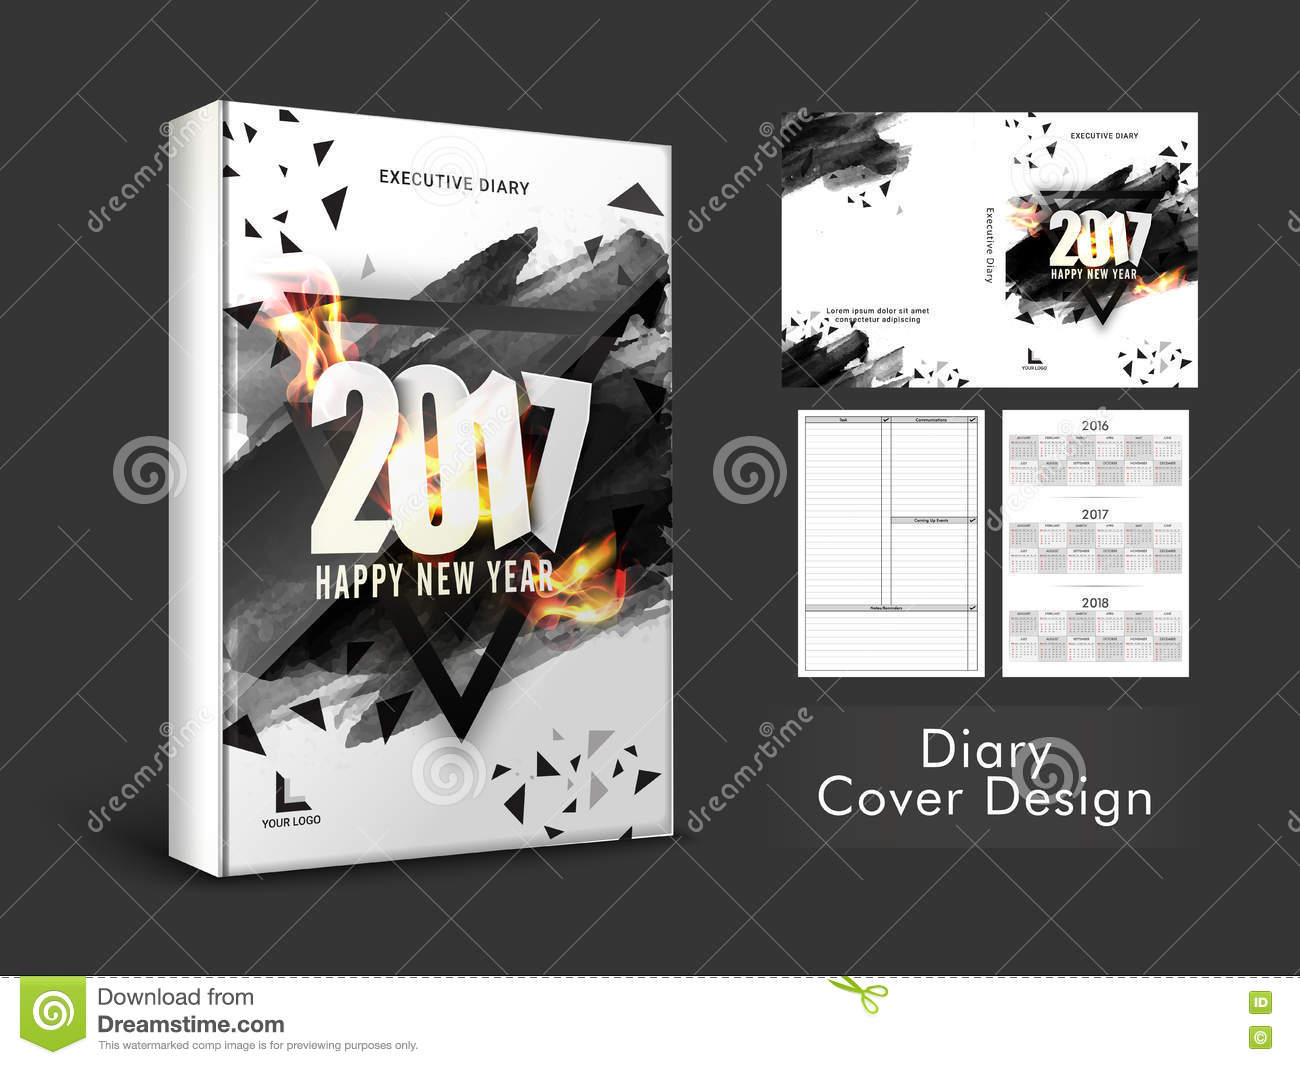 Diary Book Cover Design : Diary cover design for new year stock illustration